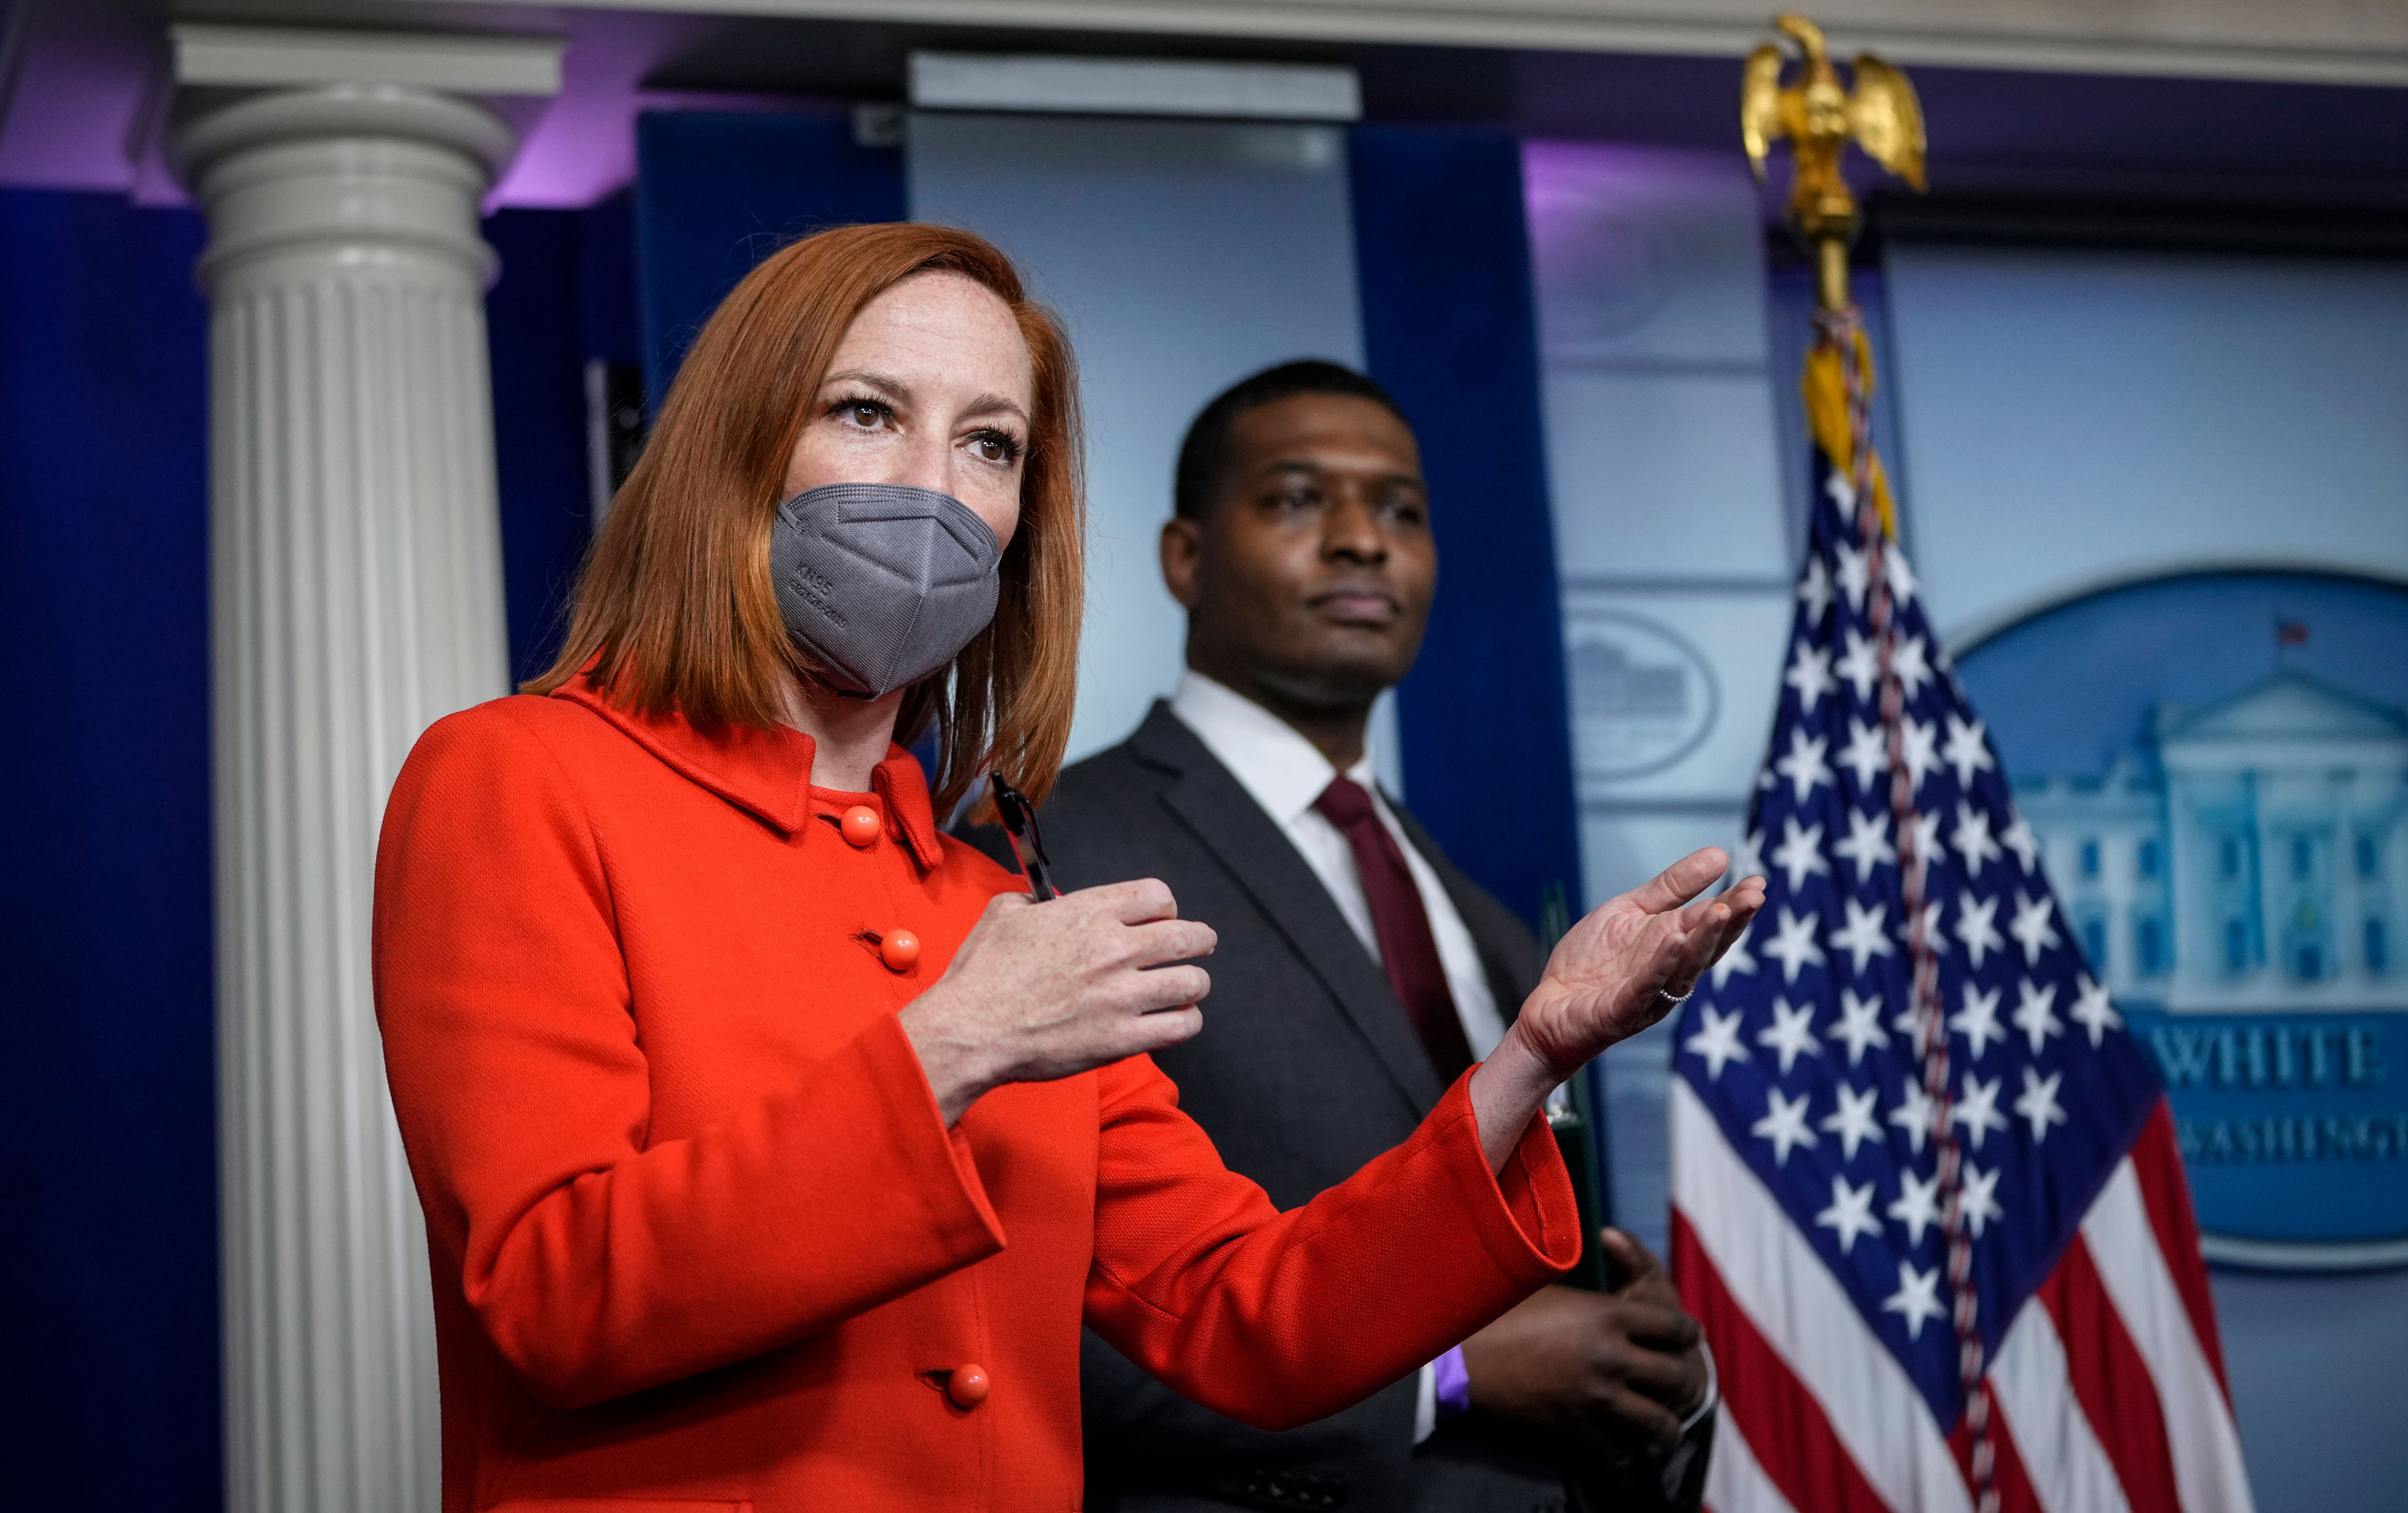 White House Press Secretary Jen Psaki speaks as Administrator of the Environmental Protection Agency Michael Regan looks on during the daily press briefing at the White House on May 12 in Washington, DC.